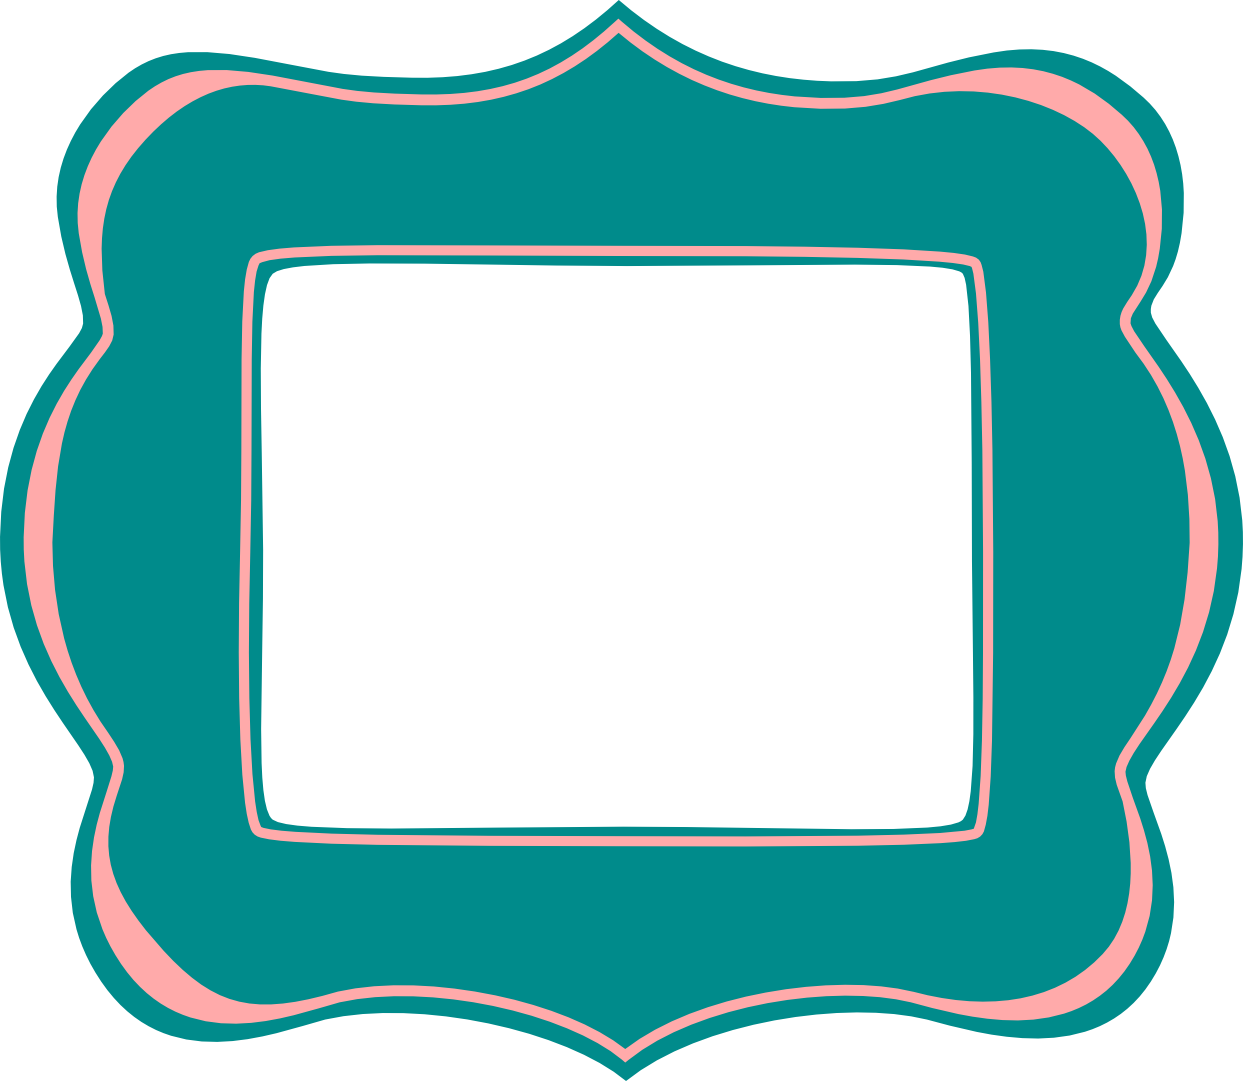 clipart label frame Clipground